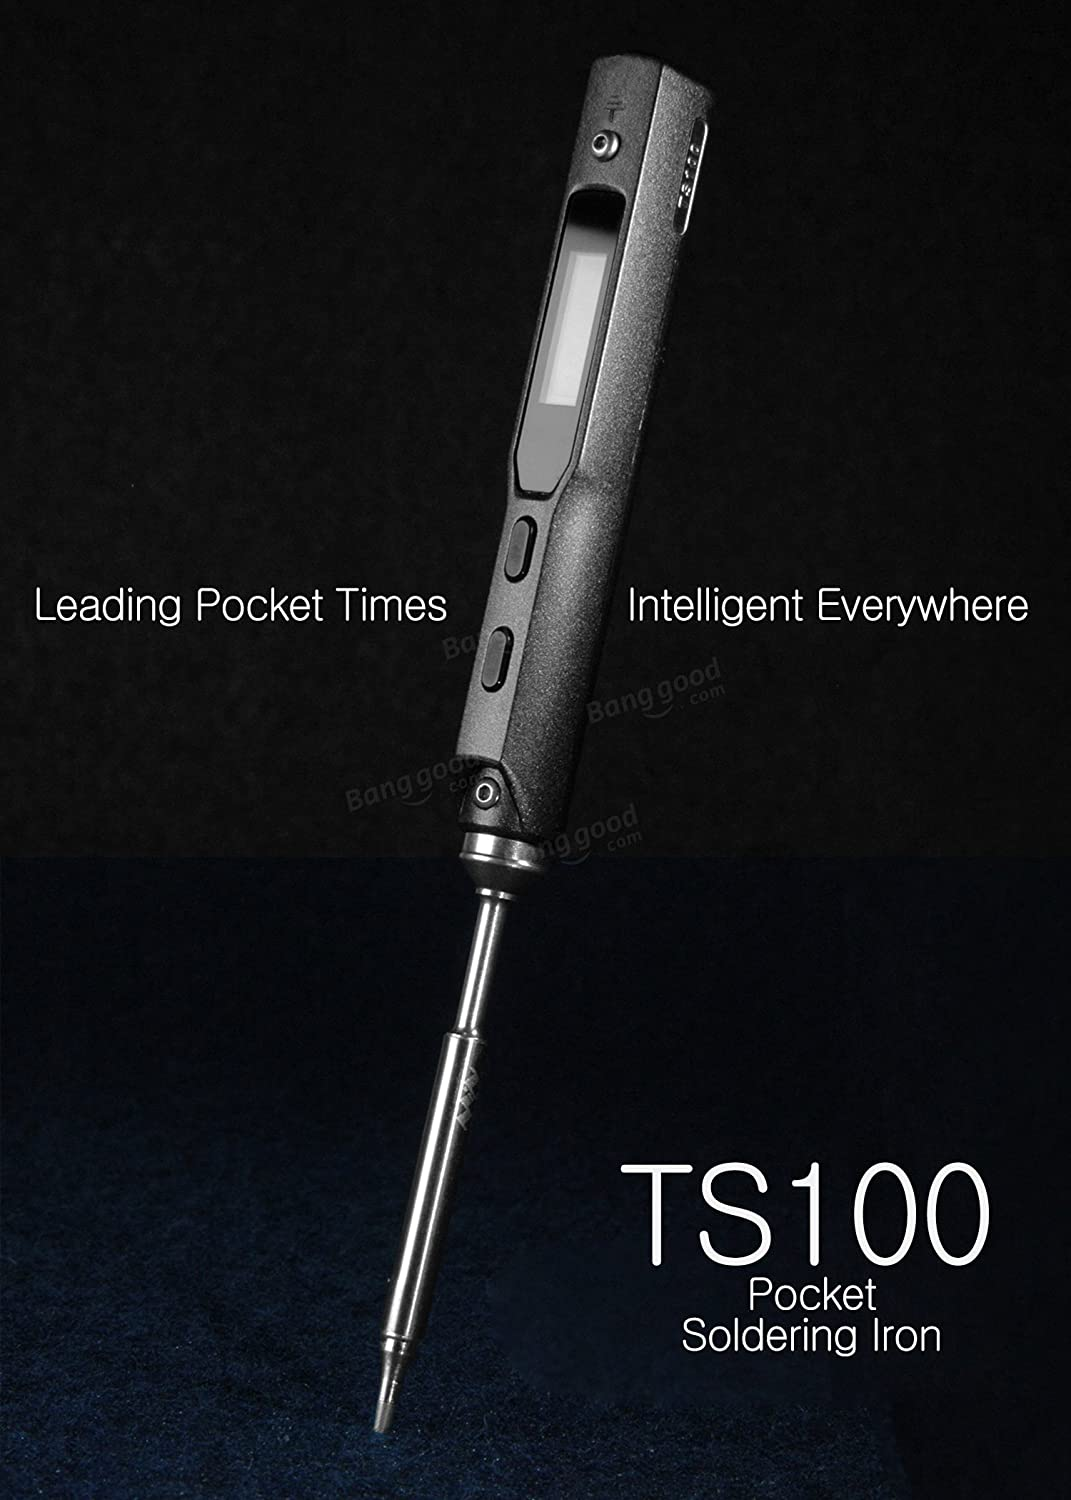 TCINF - TS100 65W Digital OLED Programmable Soldering Iron Built-in STM32 Chip: Amazon.es: Bricolaje y herramientas